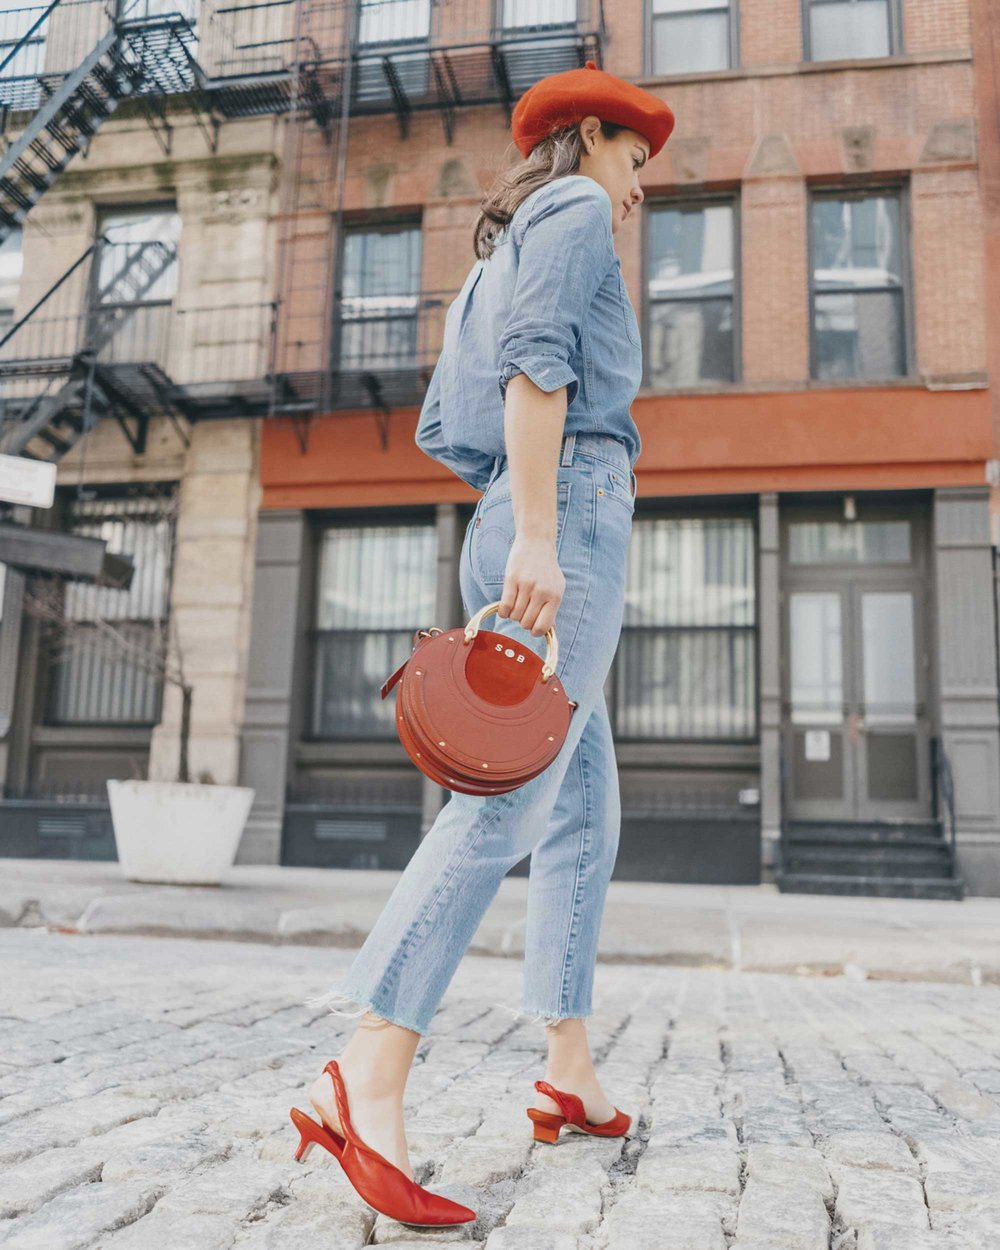 Madewell Chambray Boyfriend Shirt  Levi's Wedgie High-Rise Straight Jeans Chloe Pixie Leather Crossbody Bag.jpg